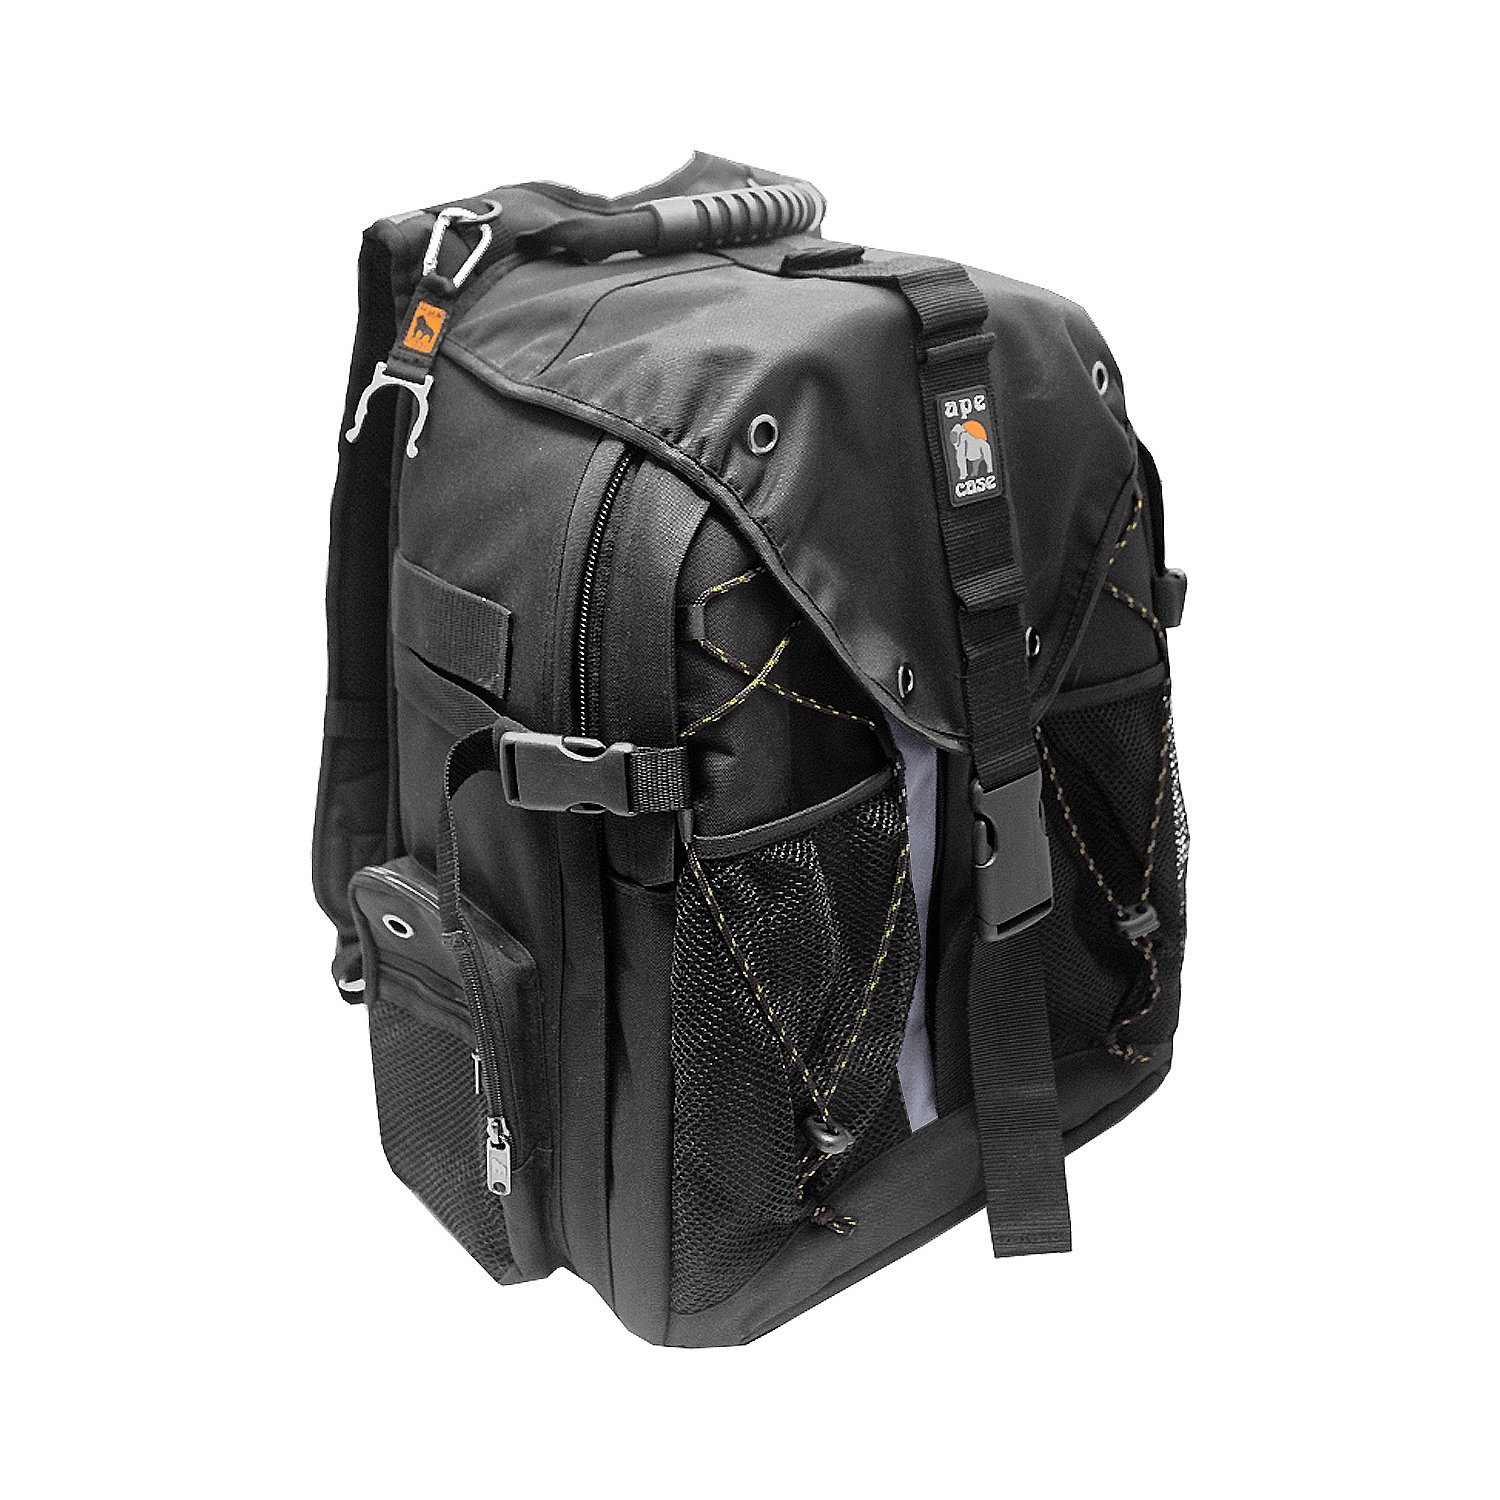 Ape Case, ACPRO2000, Large backpack, Laptop compartment, Padded, Rain cover included, Adjustable straps, Camera Backpack, Equipment bag, Black (ACPRO2000) by Ape Case (Image #1)